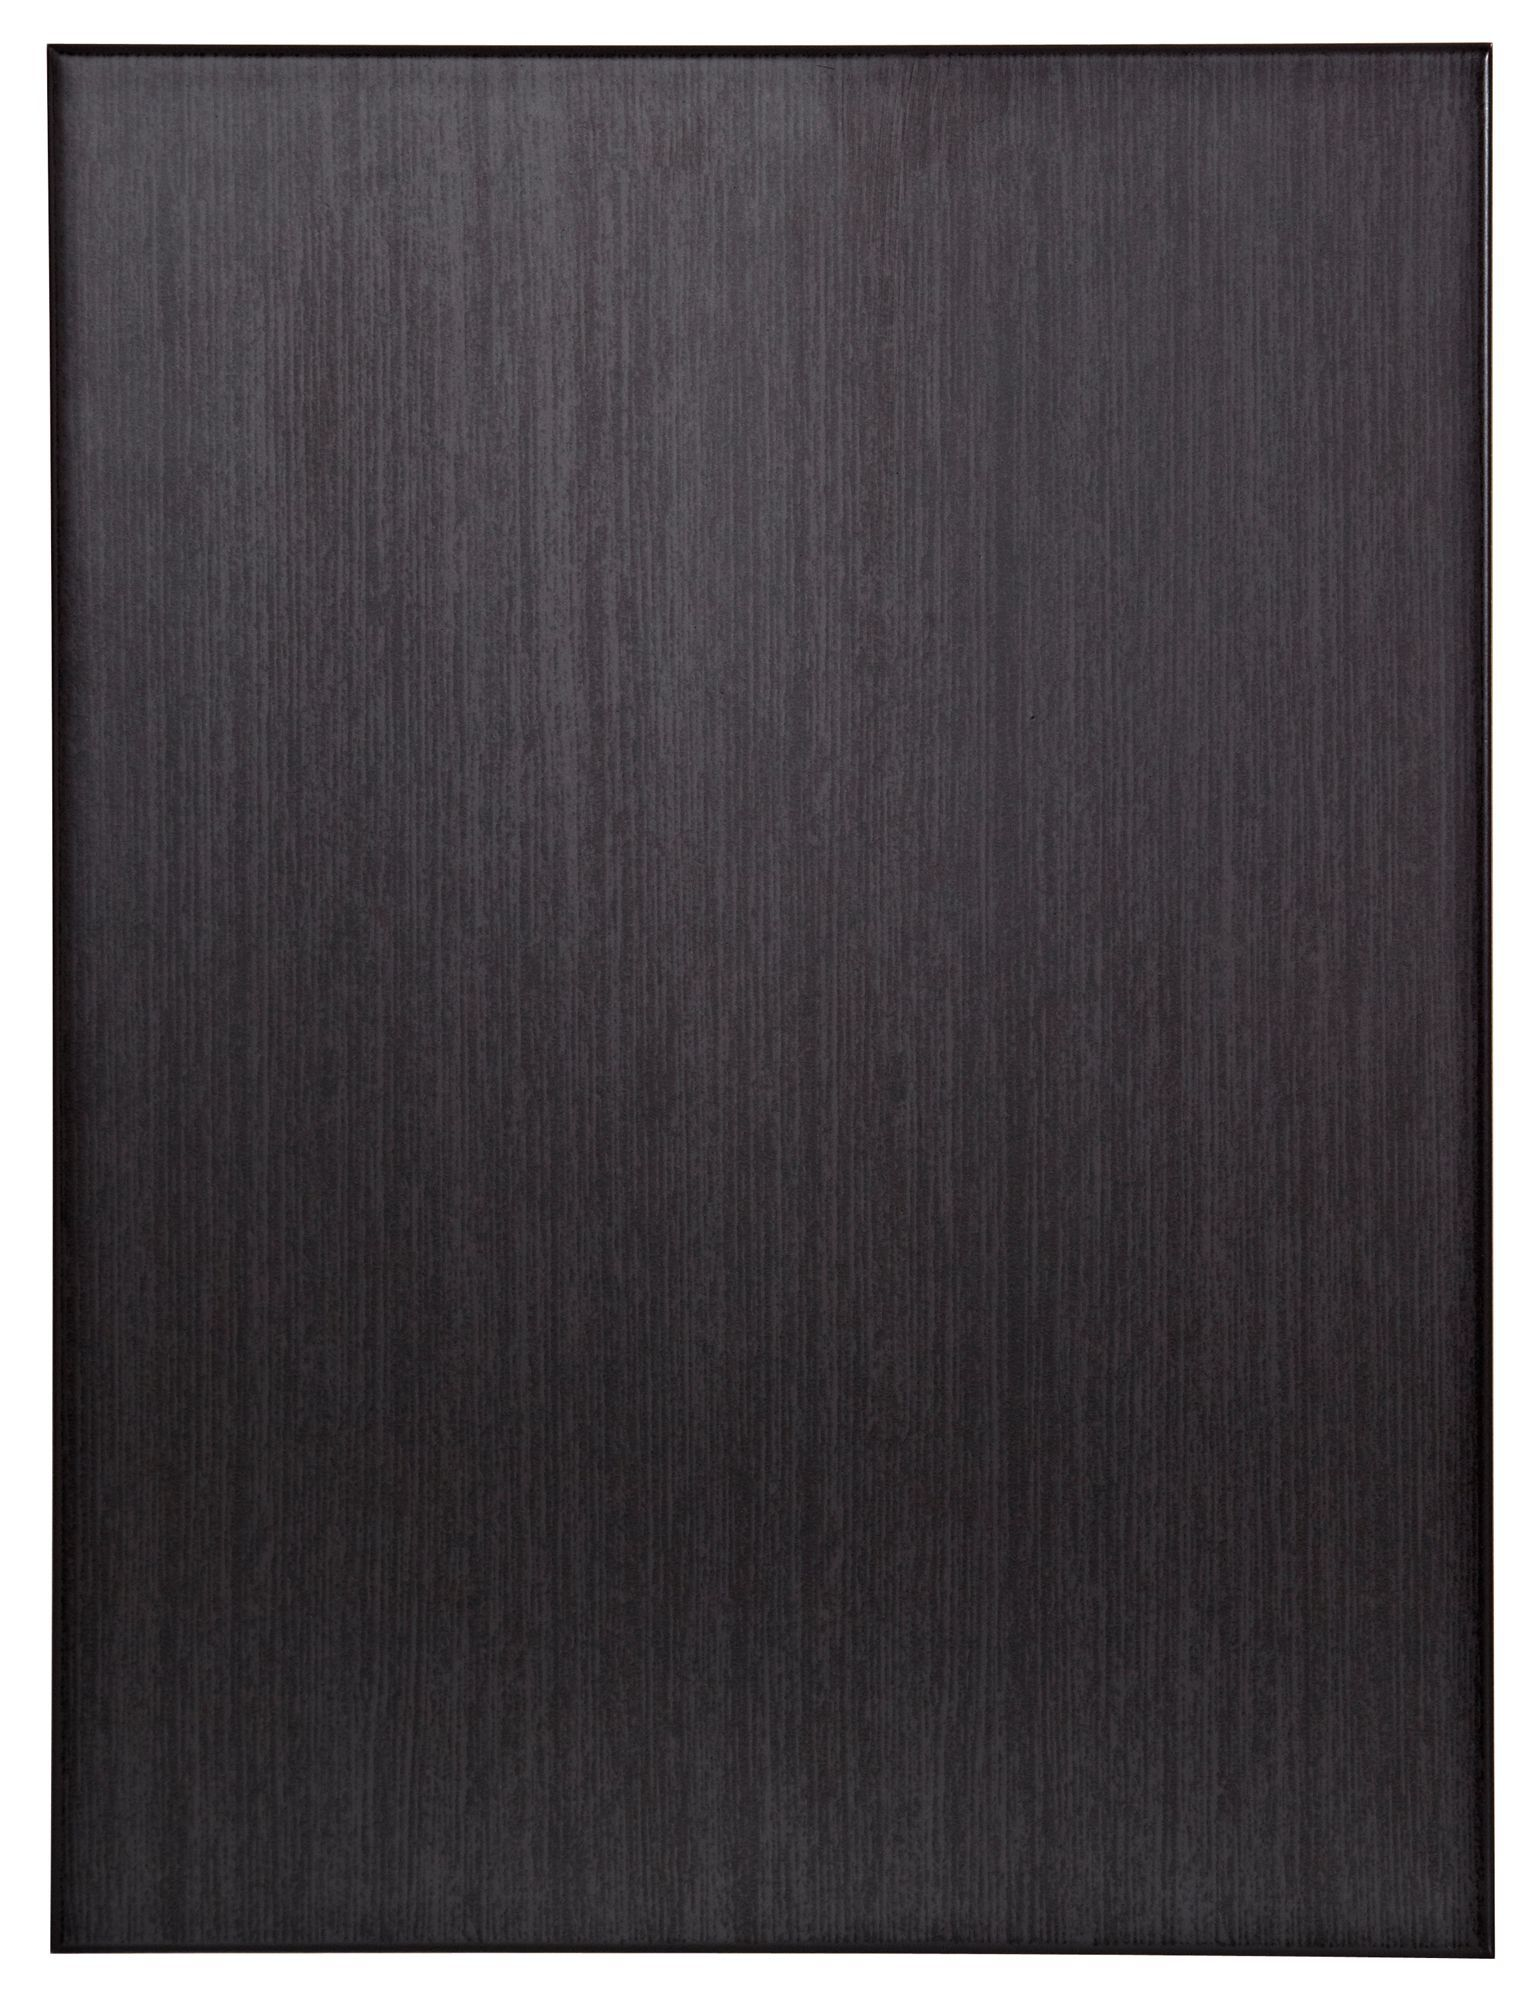 Charcoal Meloni Ceramic Wall Tile, Pack Of 6, (l)330mm (w)250mm